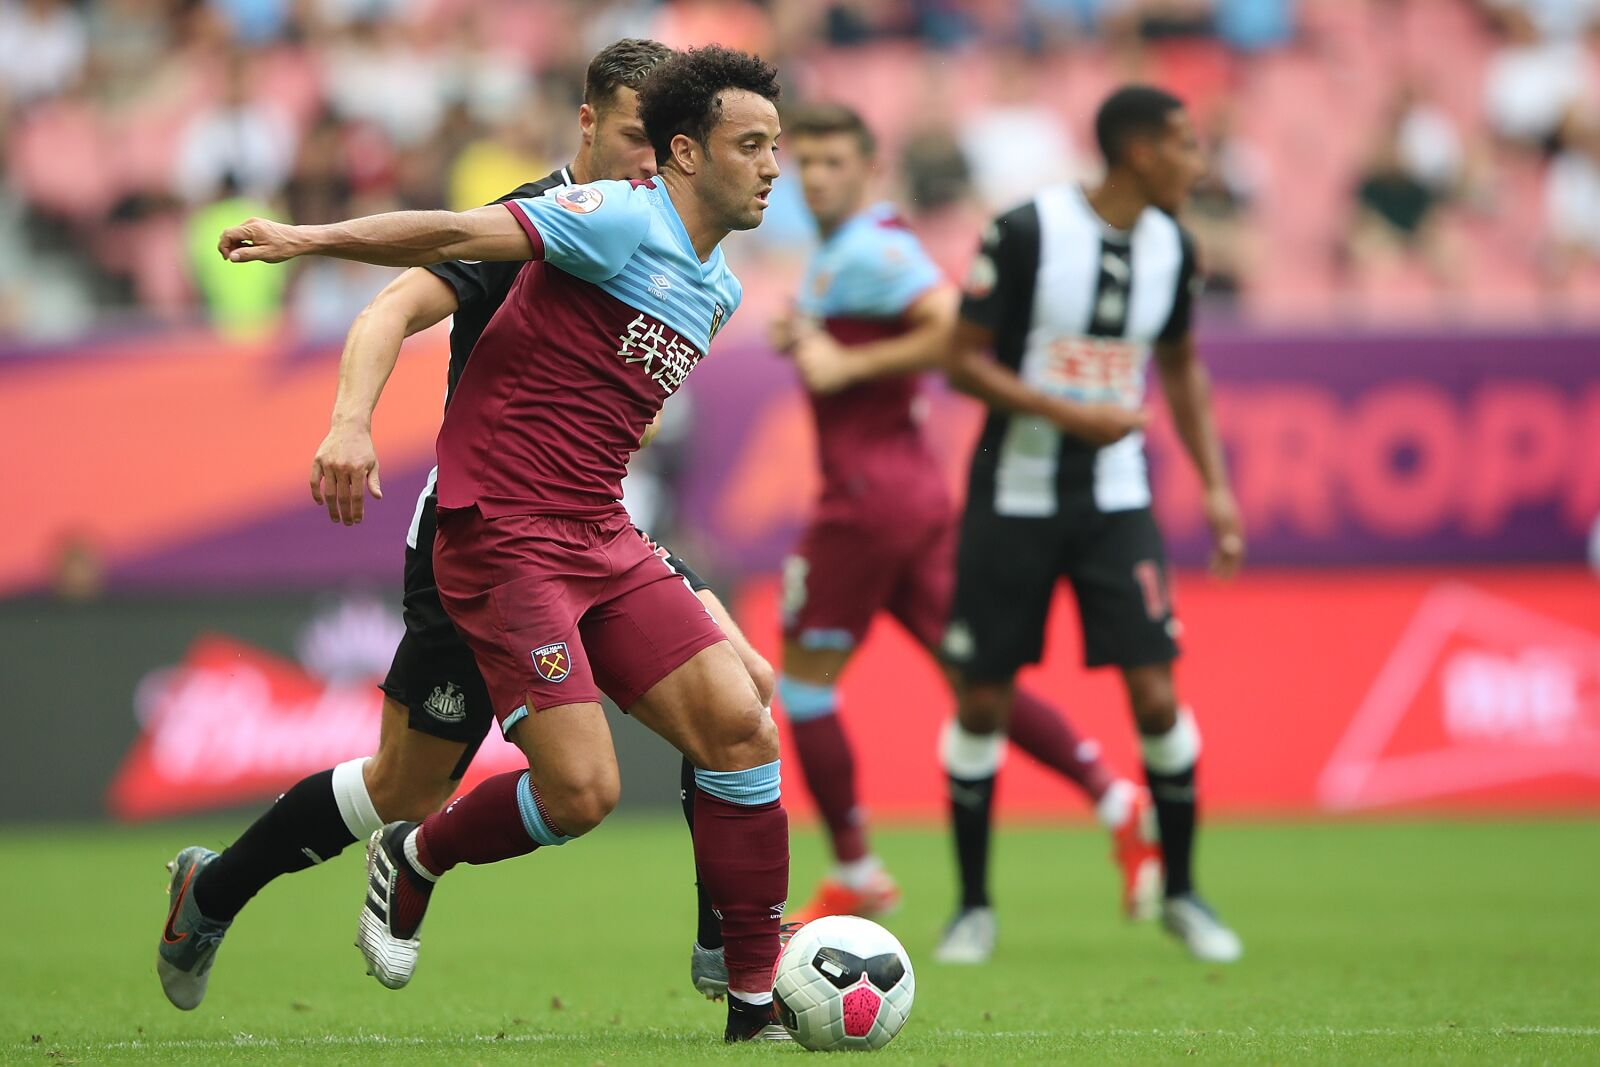 3 interesting battles to watch for vs. West Ham